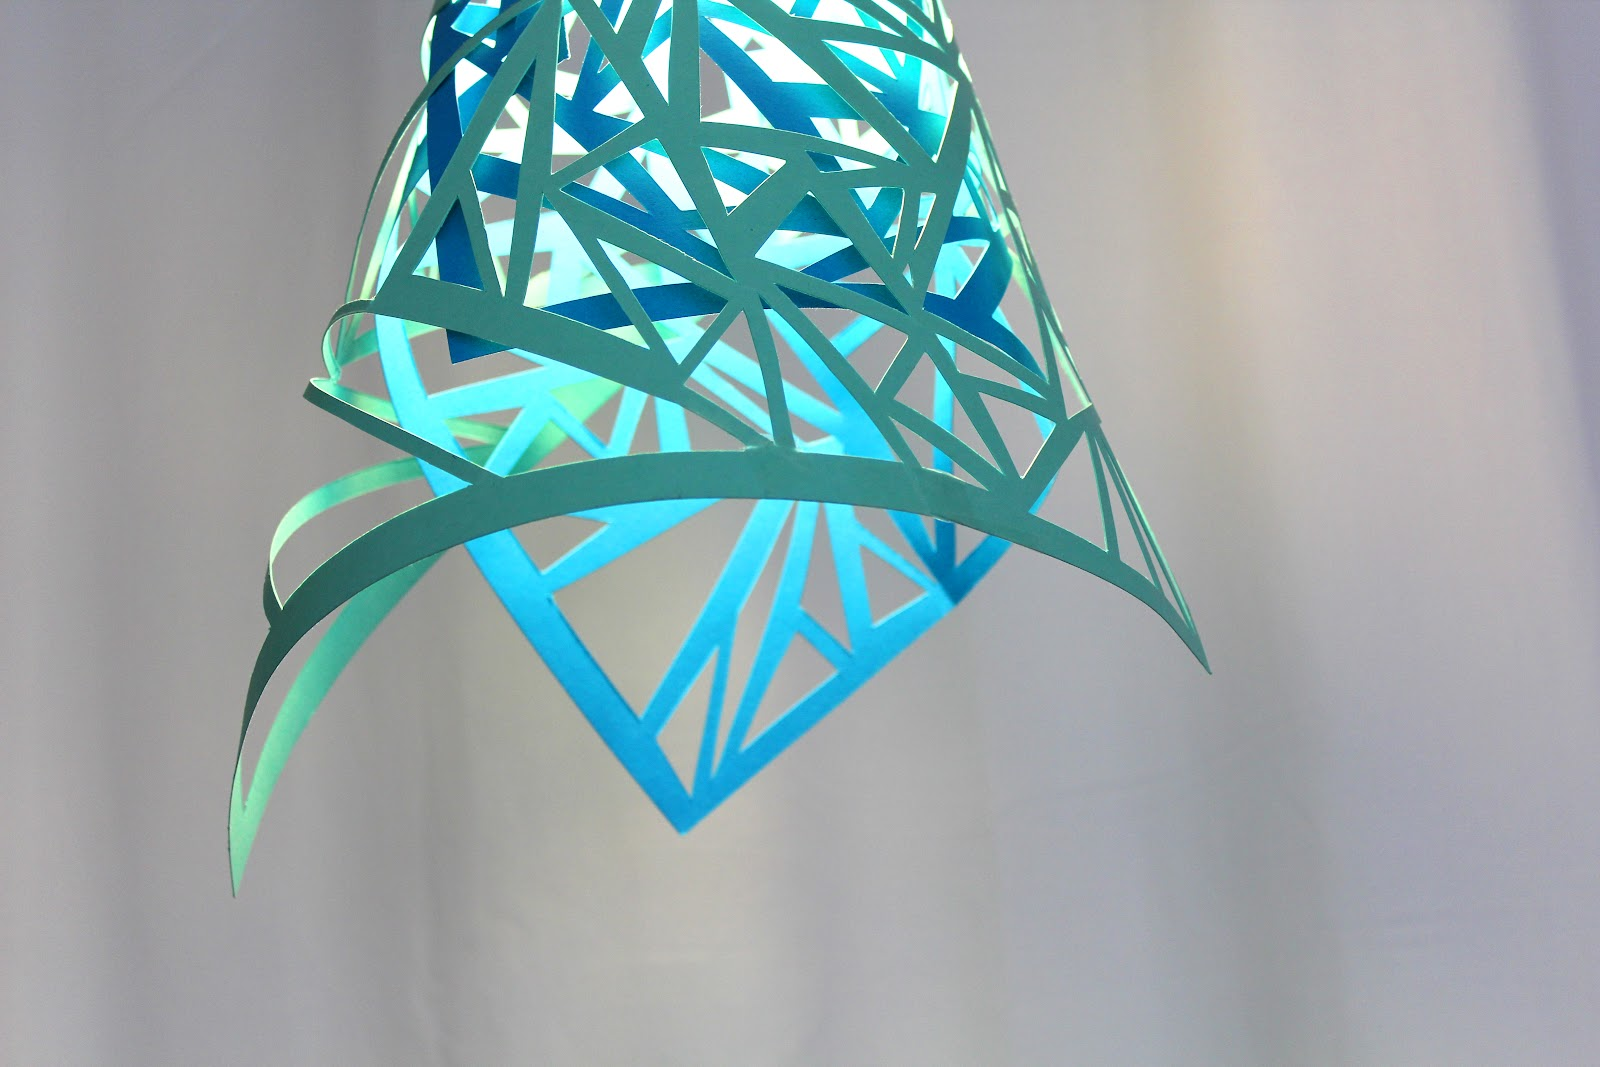 Maritime Küchenlampe Nest Diy Paper Cut Lamps In Our Home